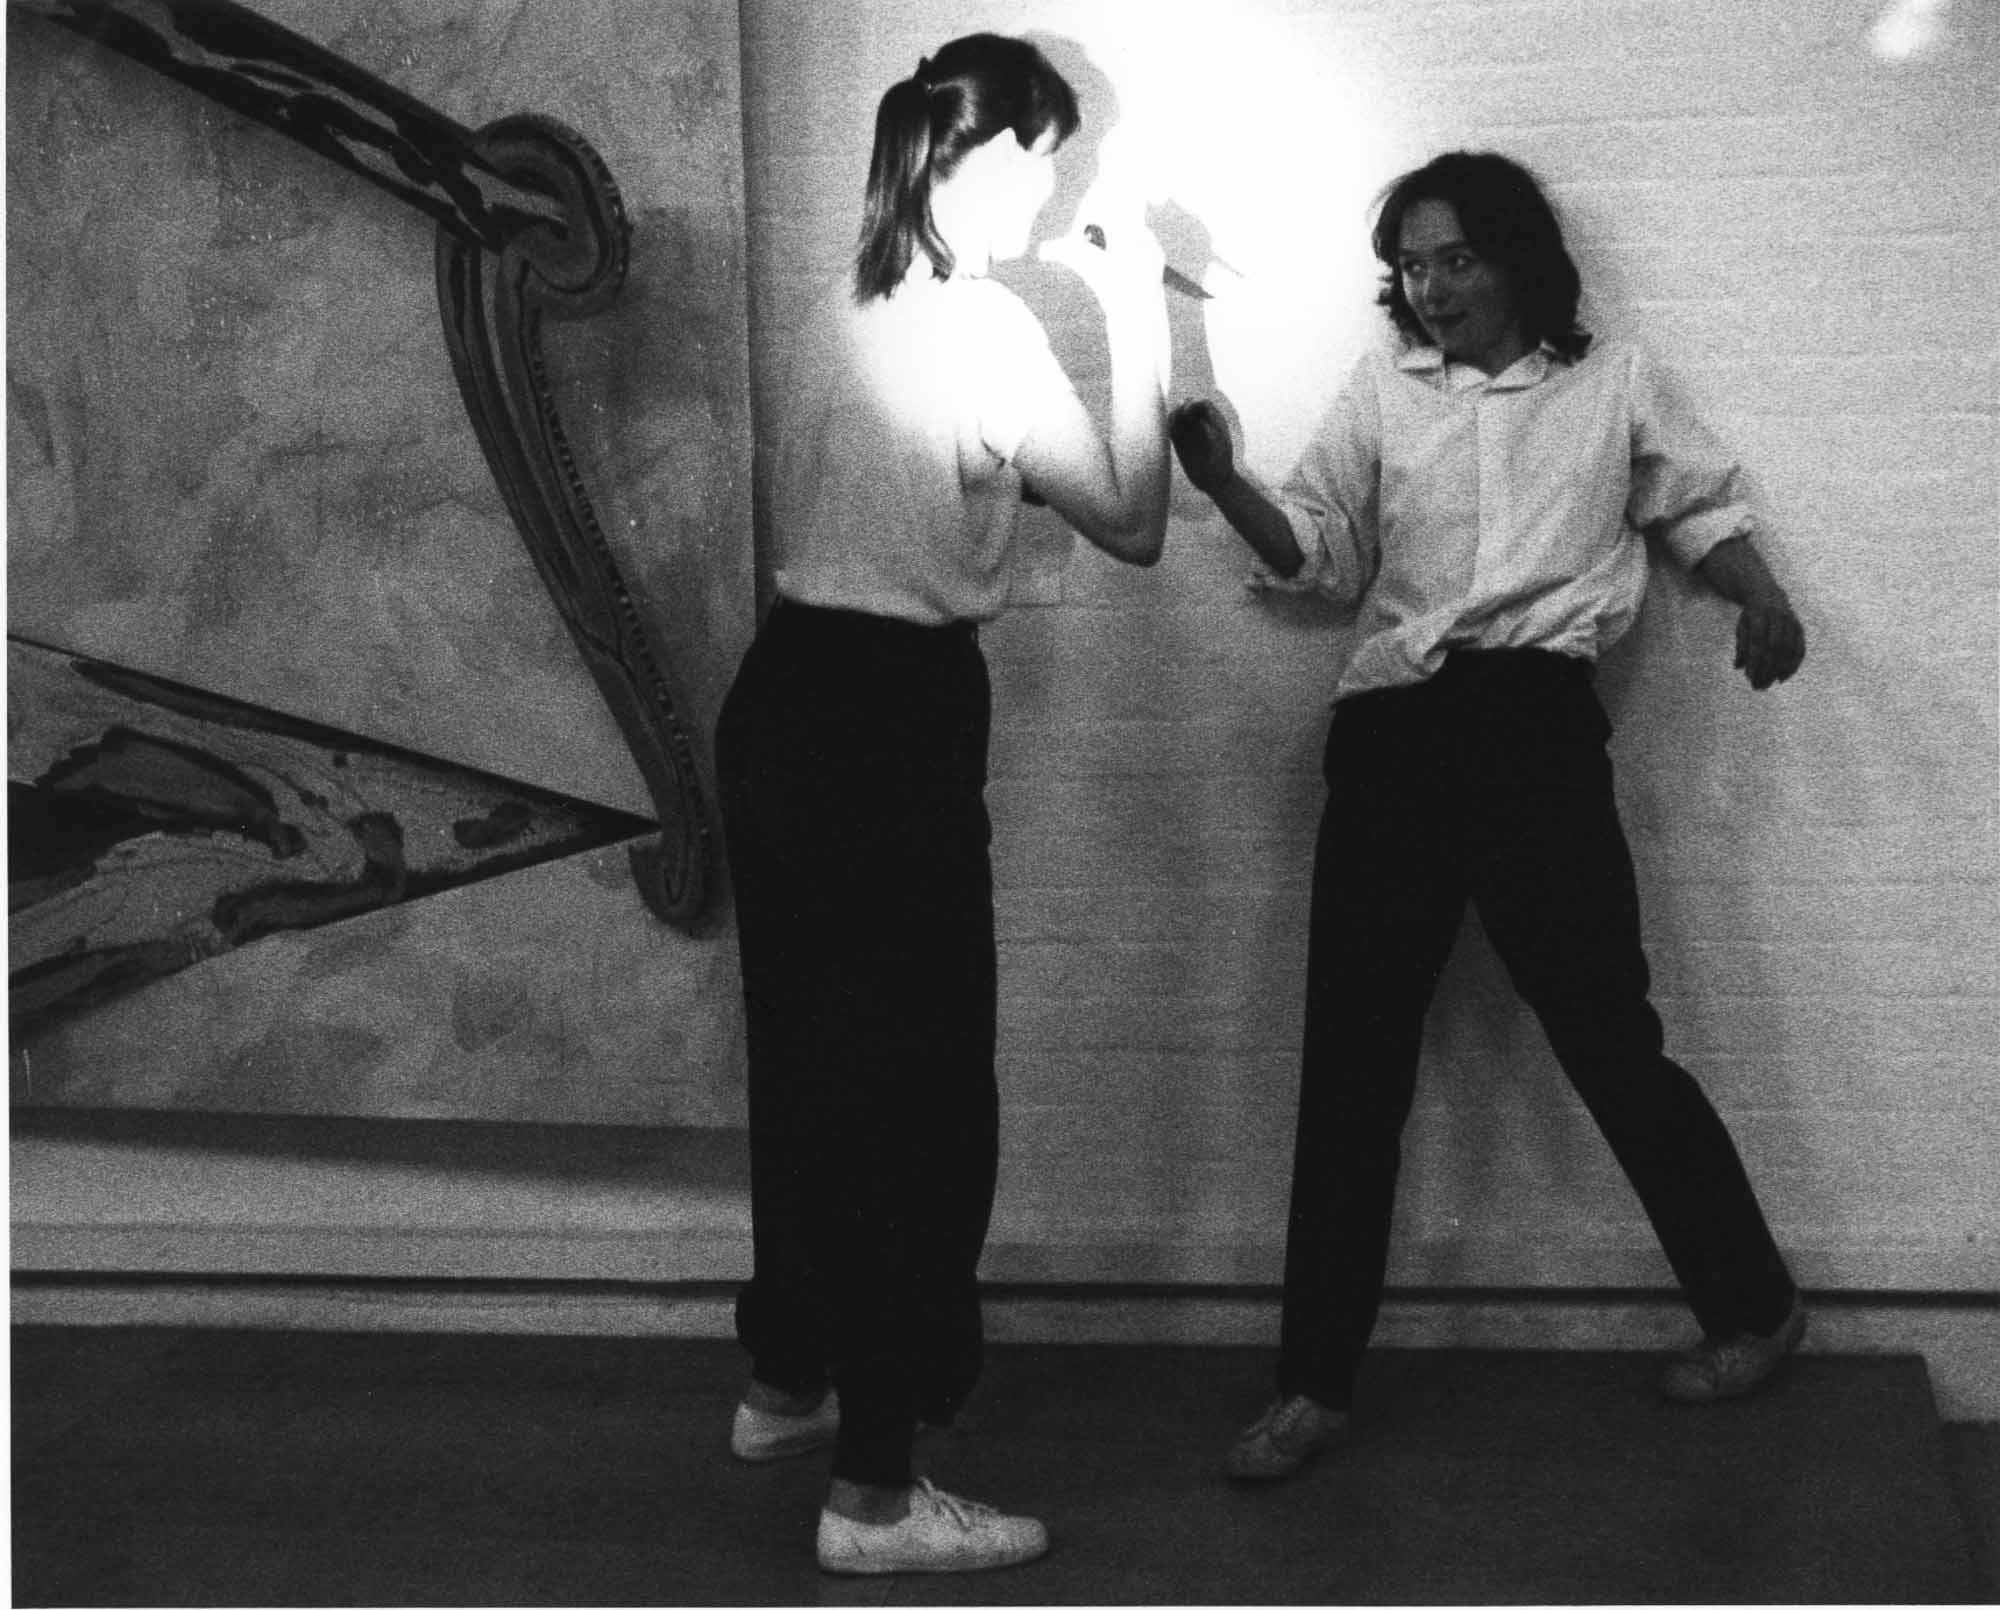 Rose English and Jacky Lansley and Sally Potter, Mounting, (1977). Photo courtesy Modern Art Oxford.